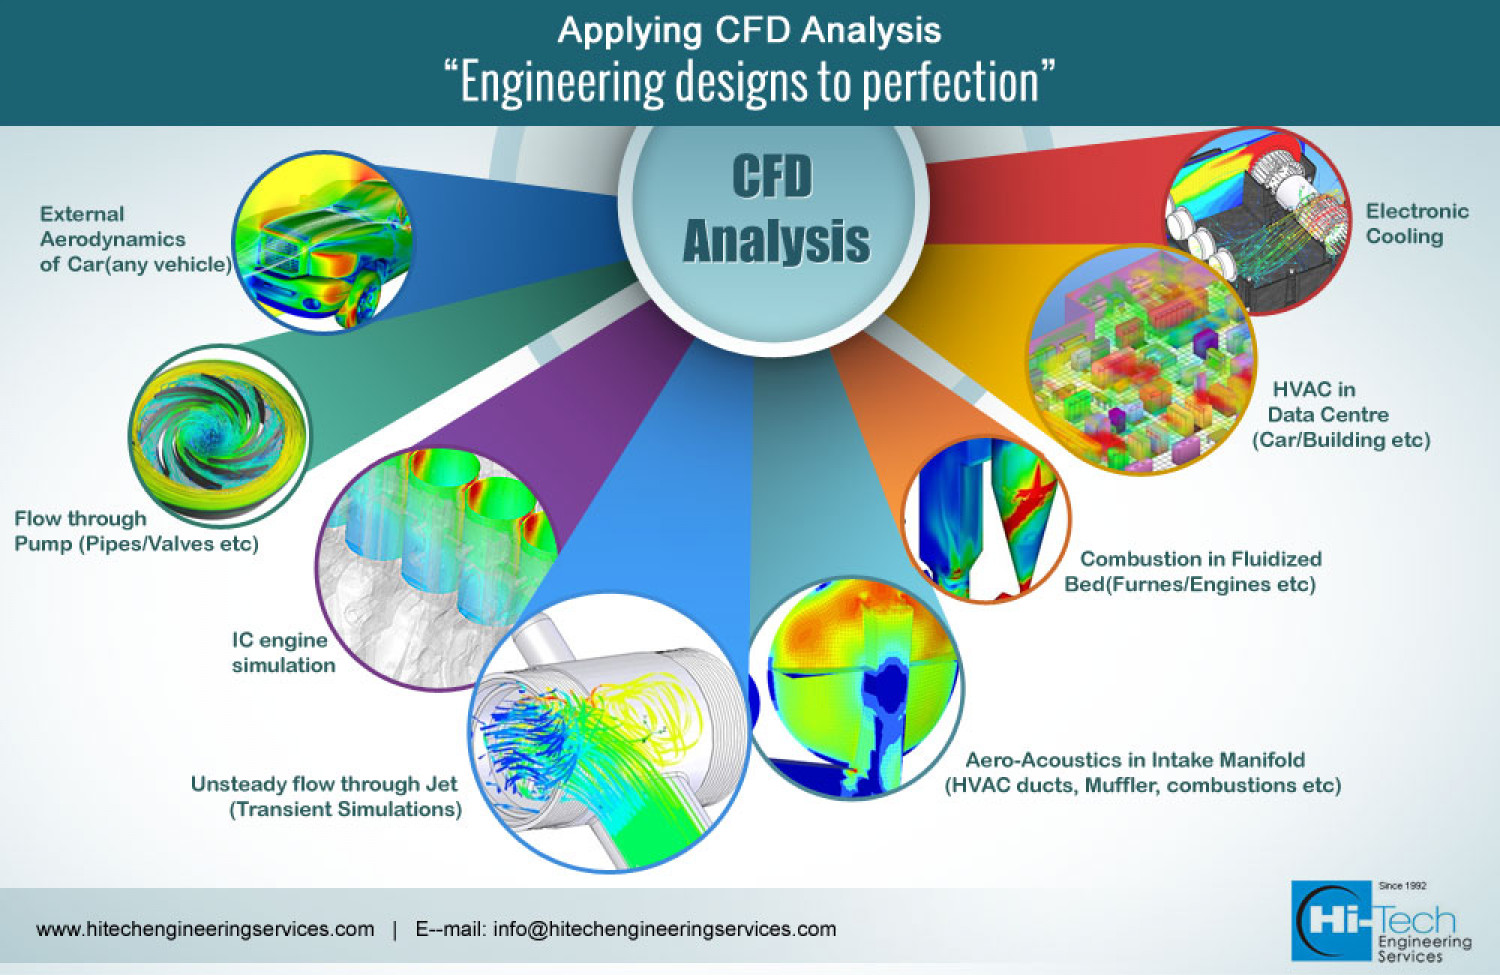 Most Popular CFD applications Infographic